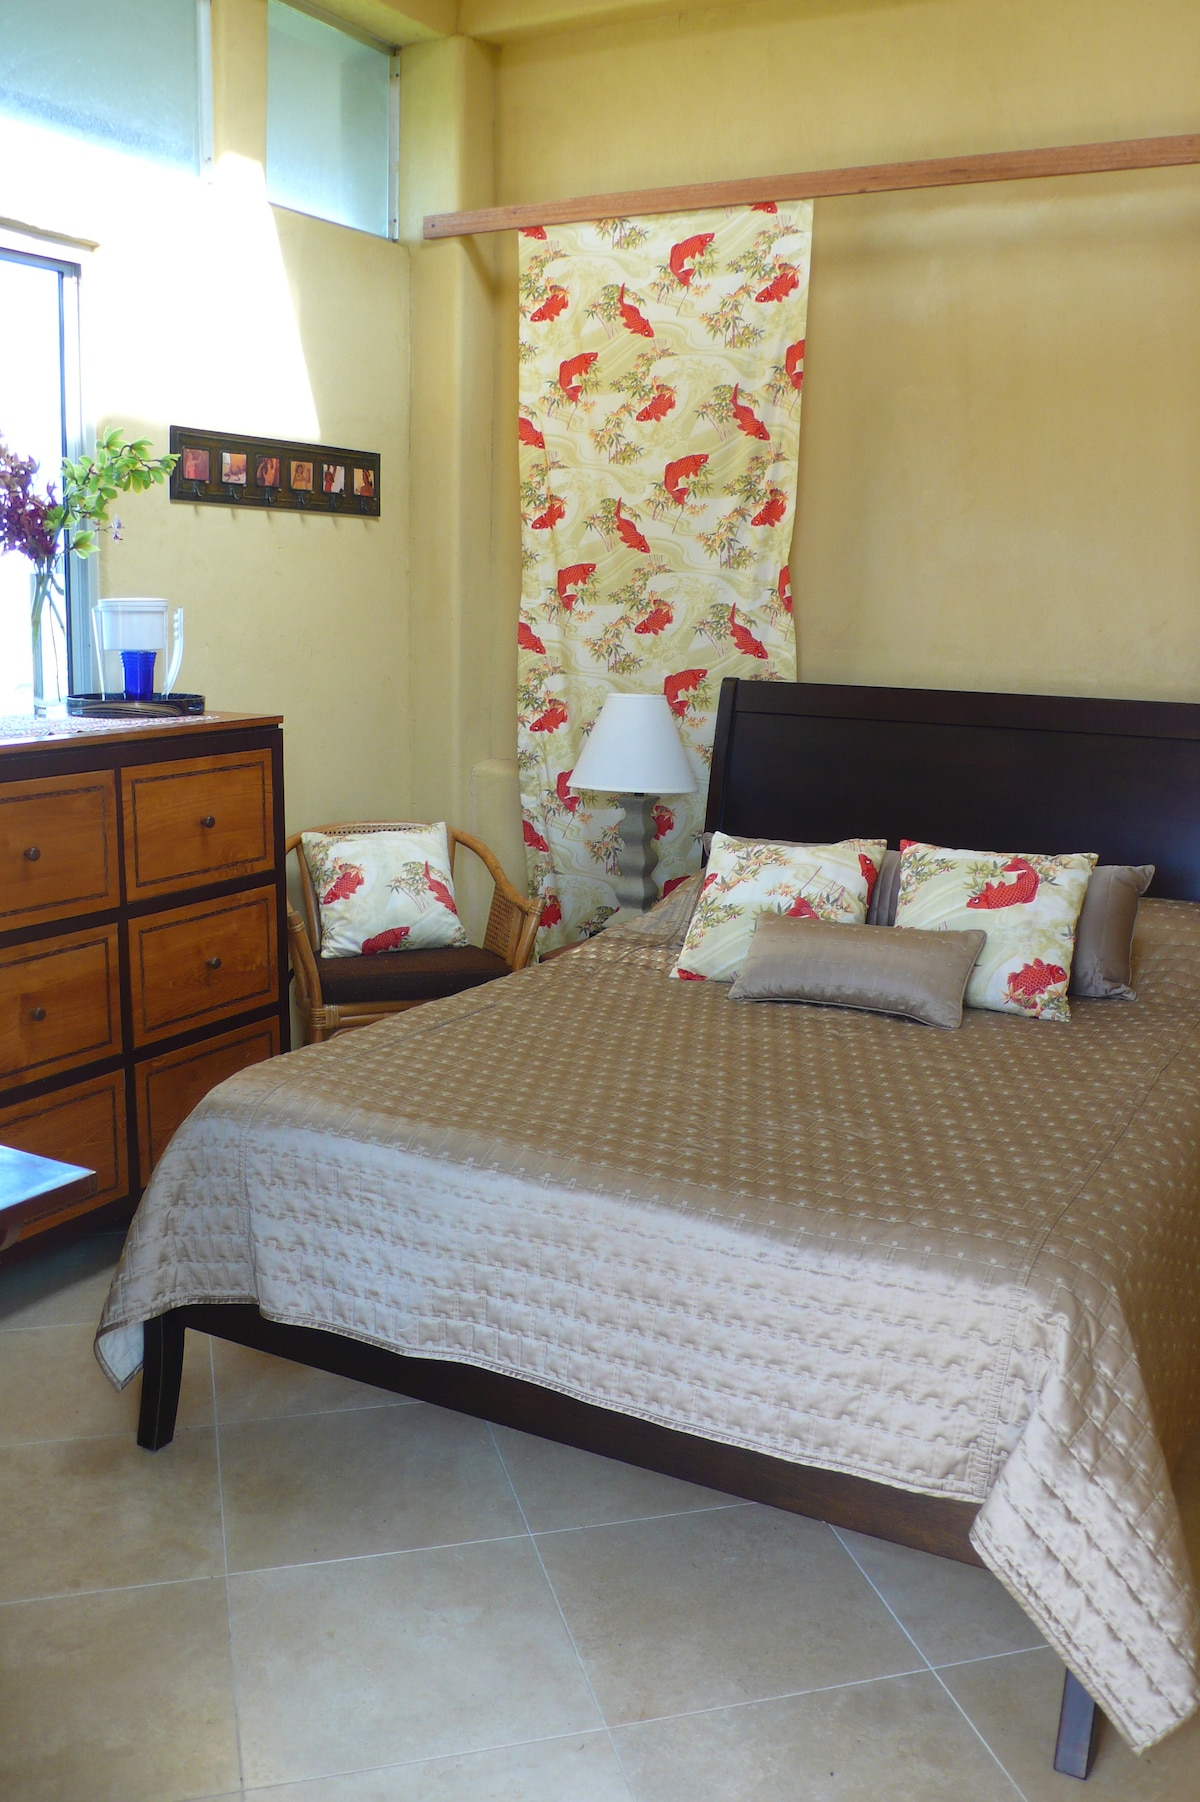 Partial view of guestroom with tropical hardwood dresser